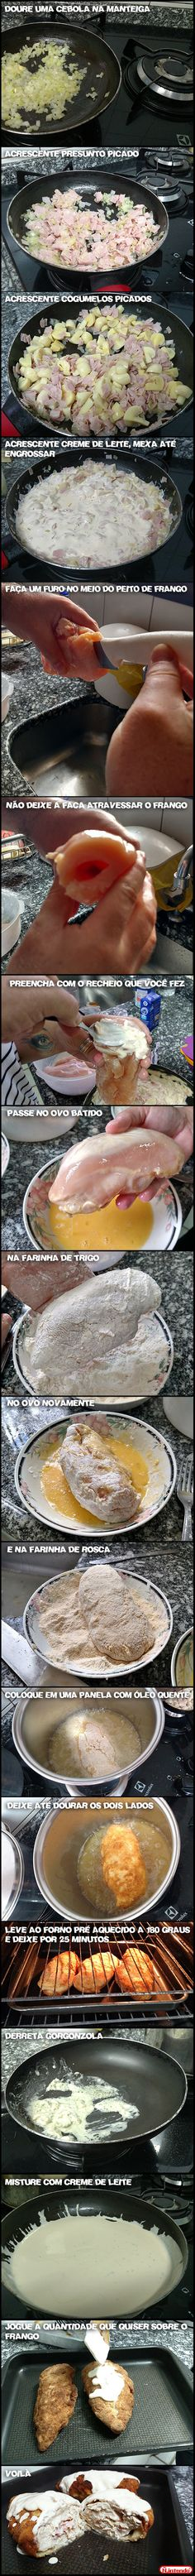 Página 9 - Não Intendo I Love Food, Good Food, Yummy Food, Easy Delicious Recipes, Snack Recipes, Menu Dieta, Cookie Time, Creative Food, Junk Food